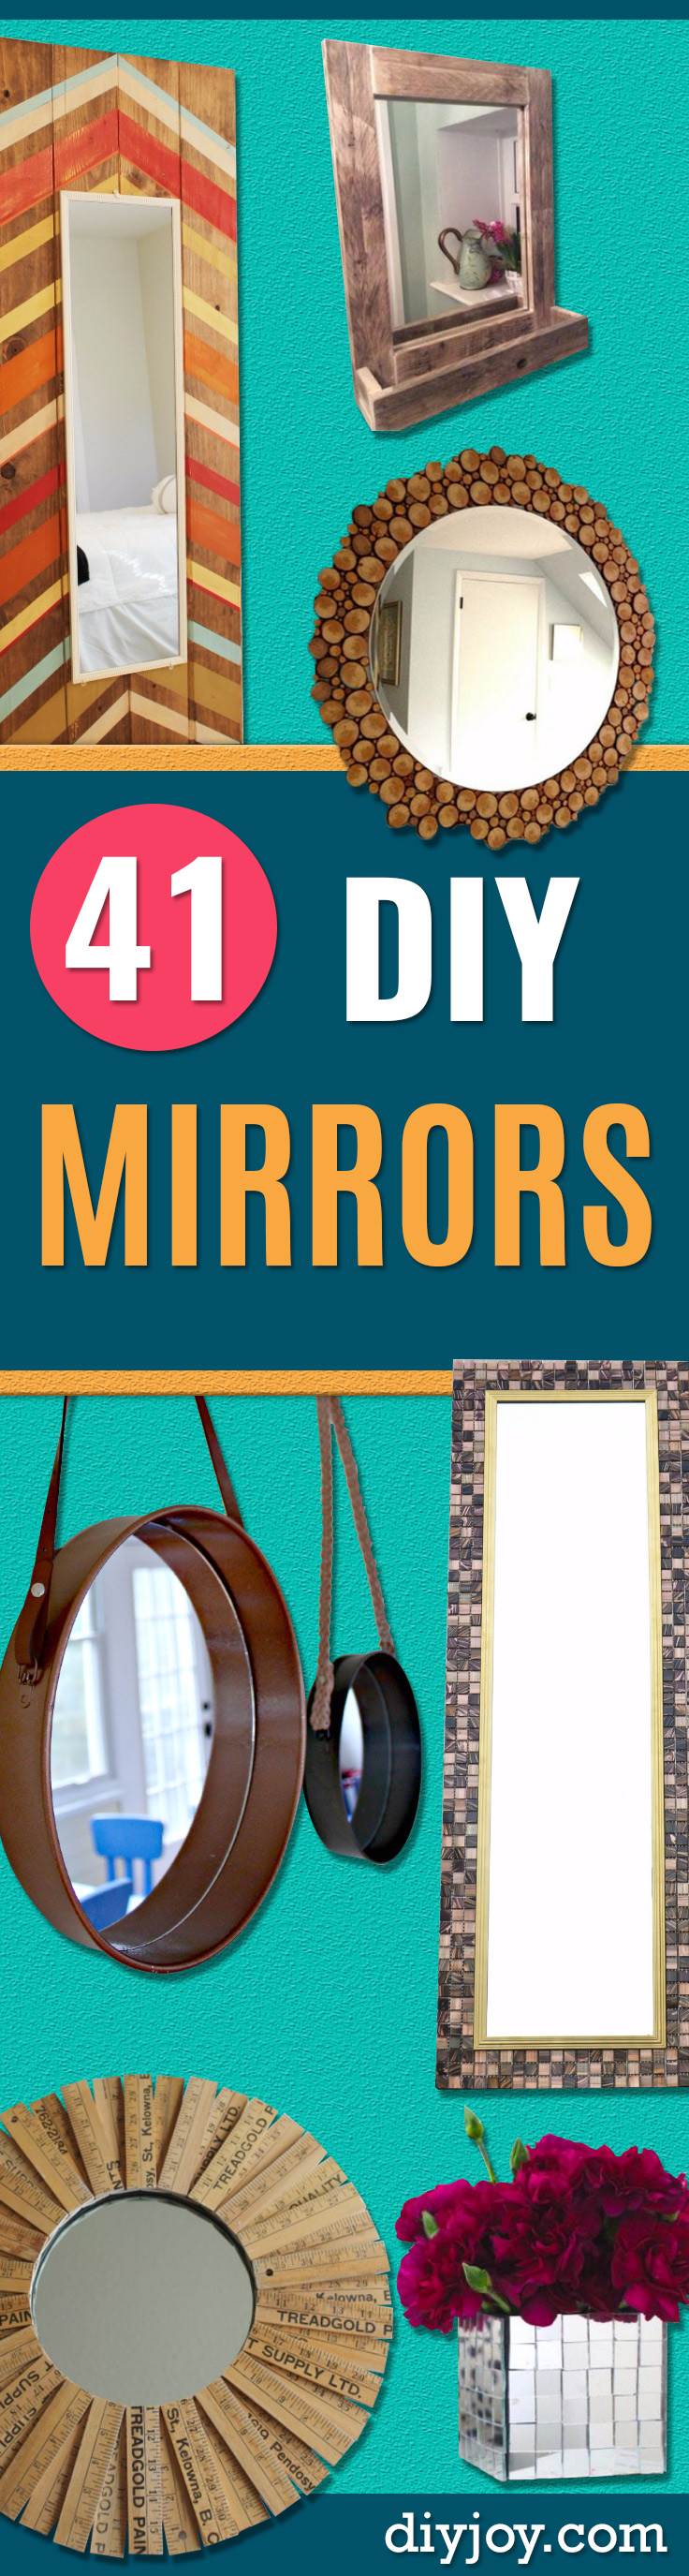 41 DIY Mirrors  and Mirror Home Decor Projects - Best Do It Yourself Mirror Projects and Cool Crafts Using Mirrors - Home Decor, Bedroom Decor and Bath Ideas - Step By Step Tutorials With Instructions http://diyjoy.com/diy-mirrors